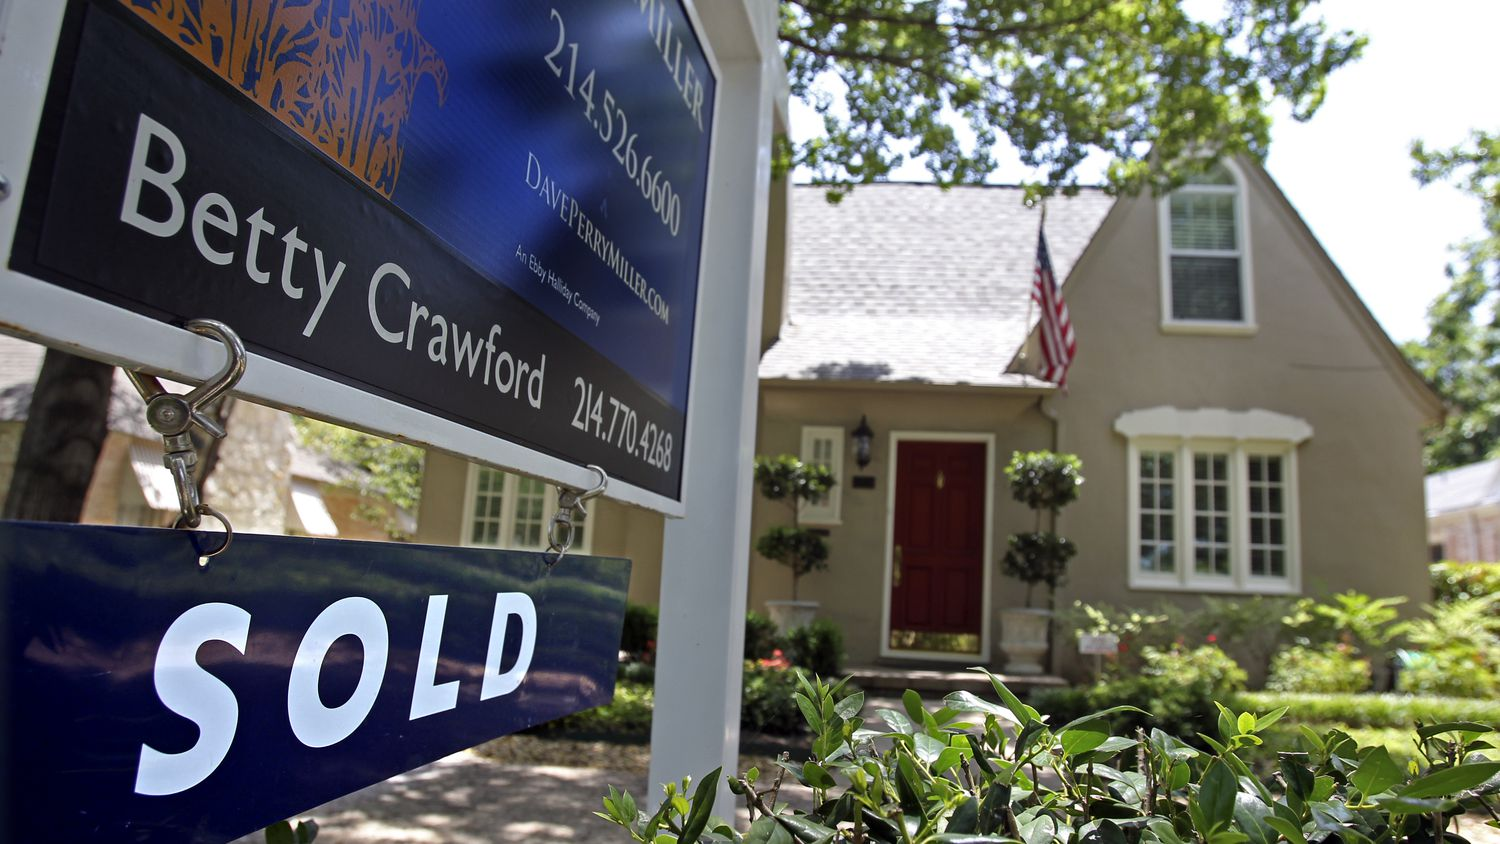 More than 9,300 North Texas homes were sold by real estate agents in March.